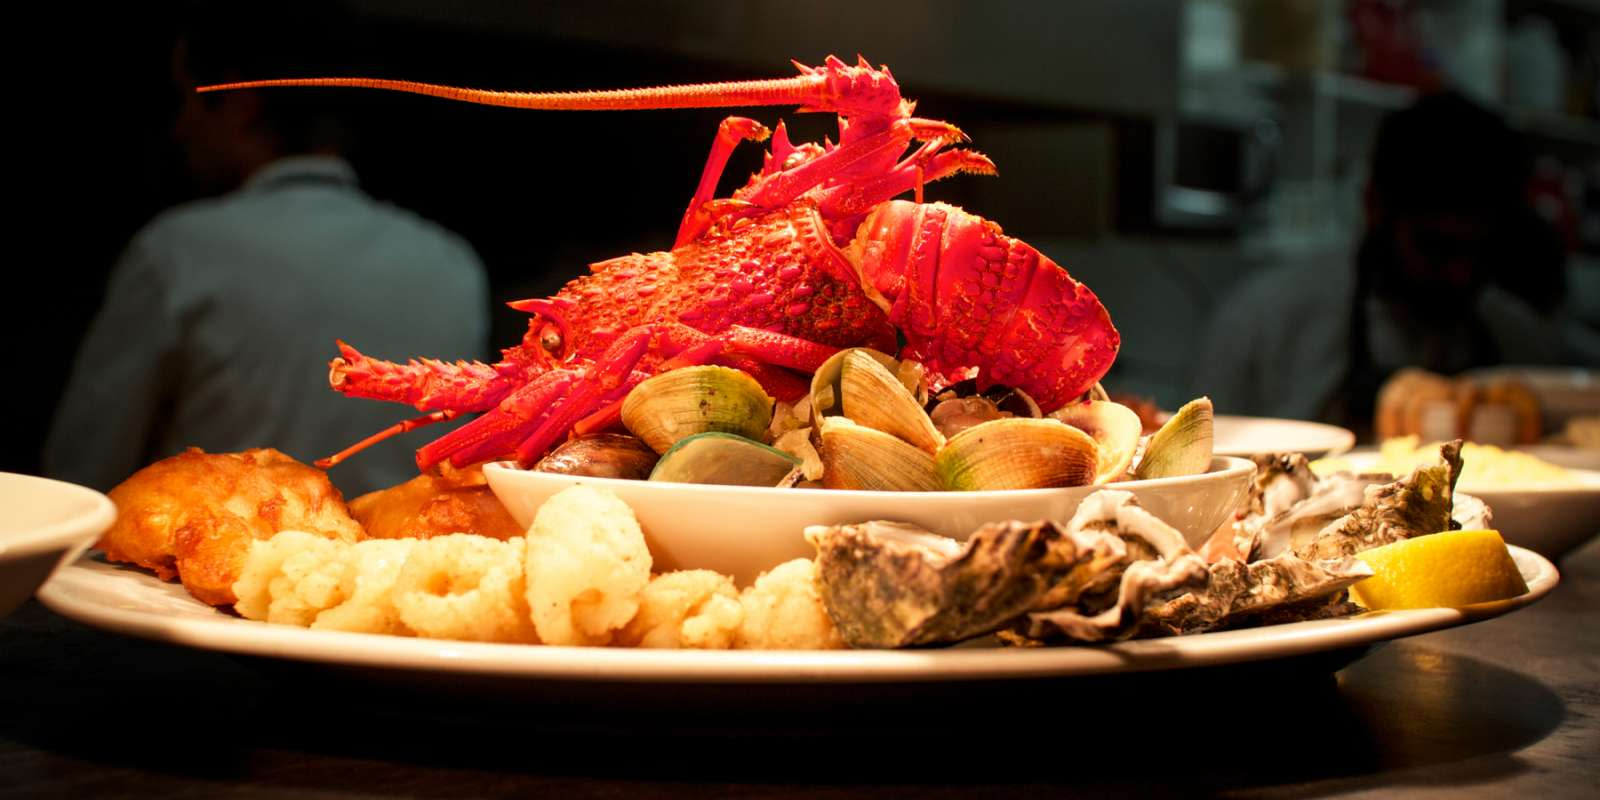 Fresh crayfish at Finz Seafood & Grill